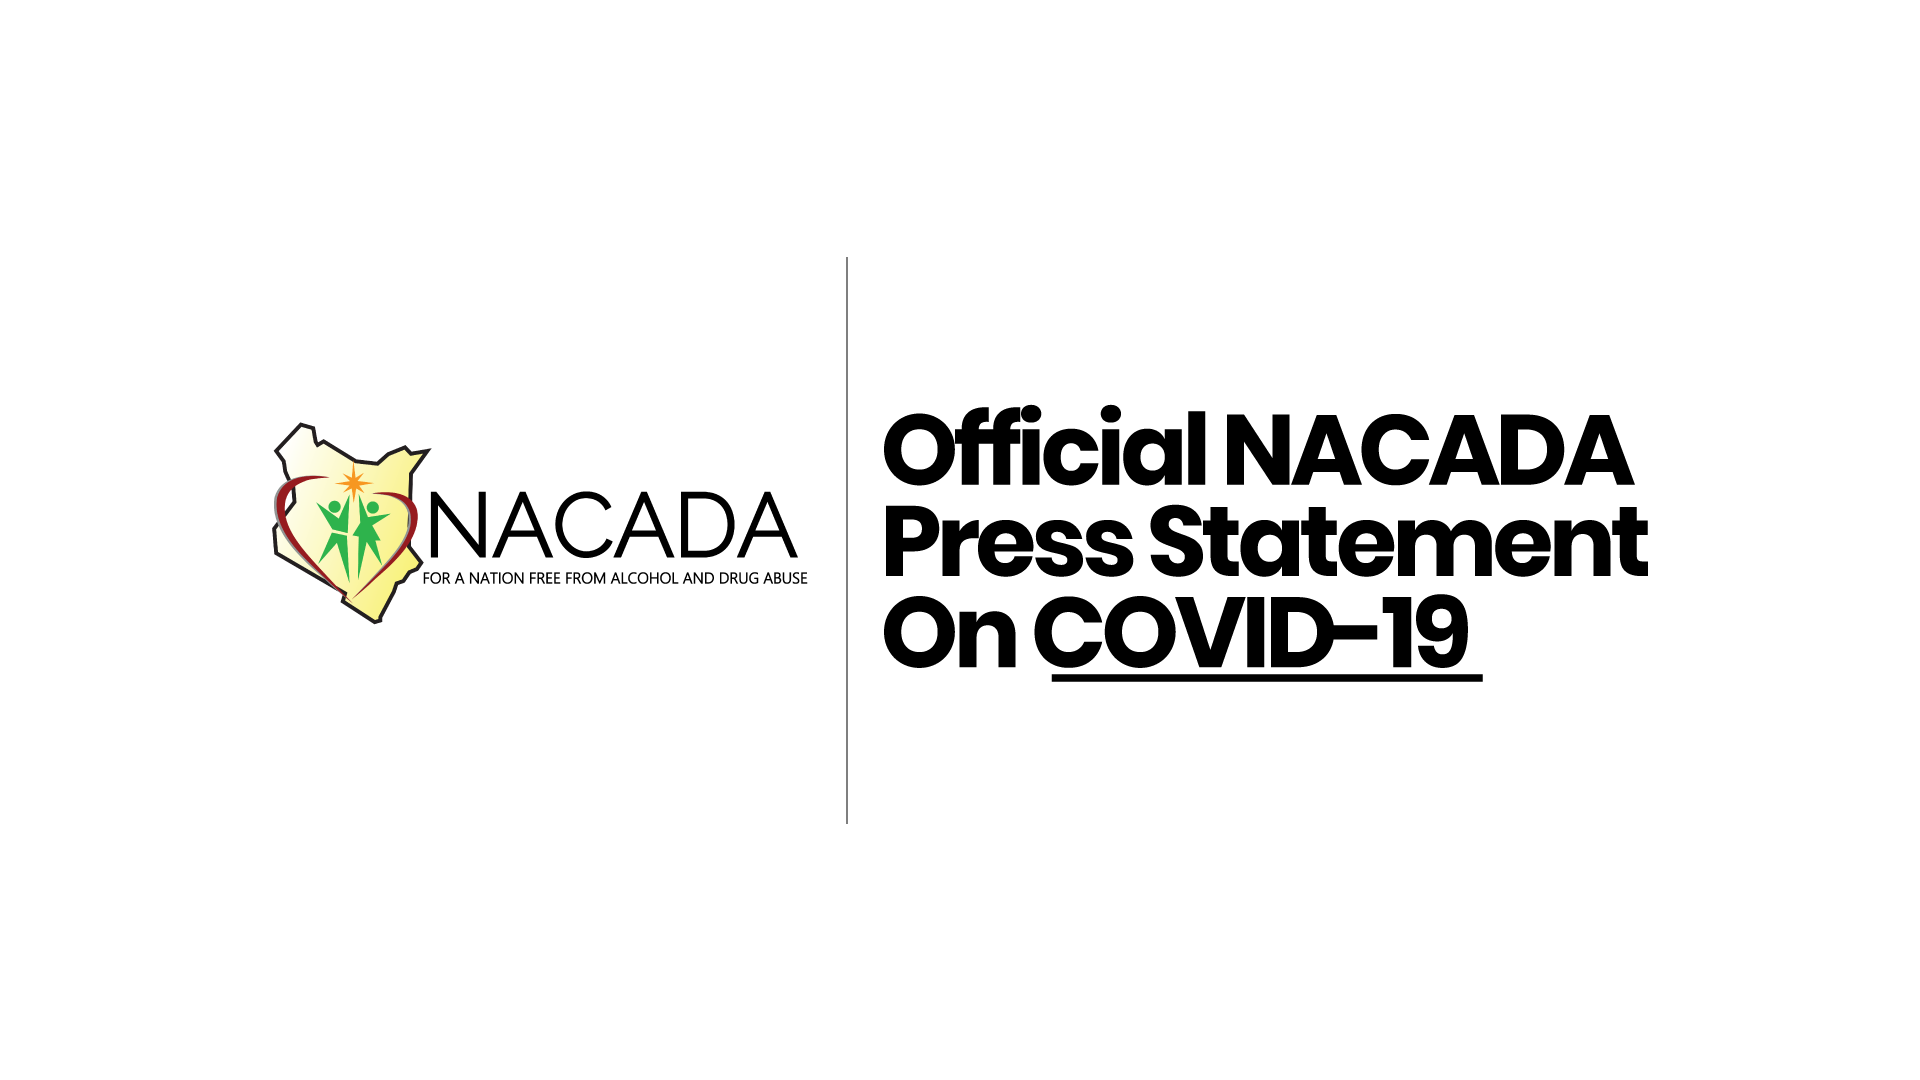 Press Statement on COVID-19